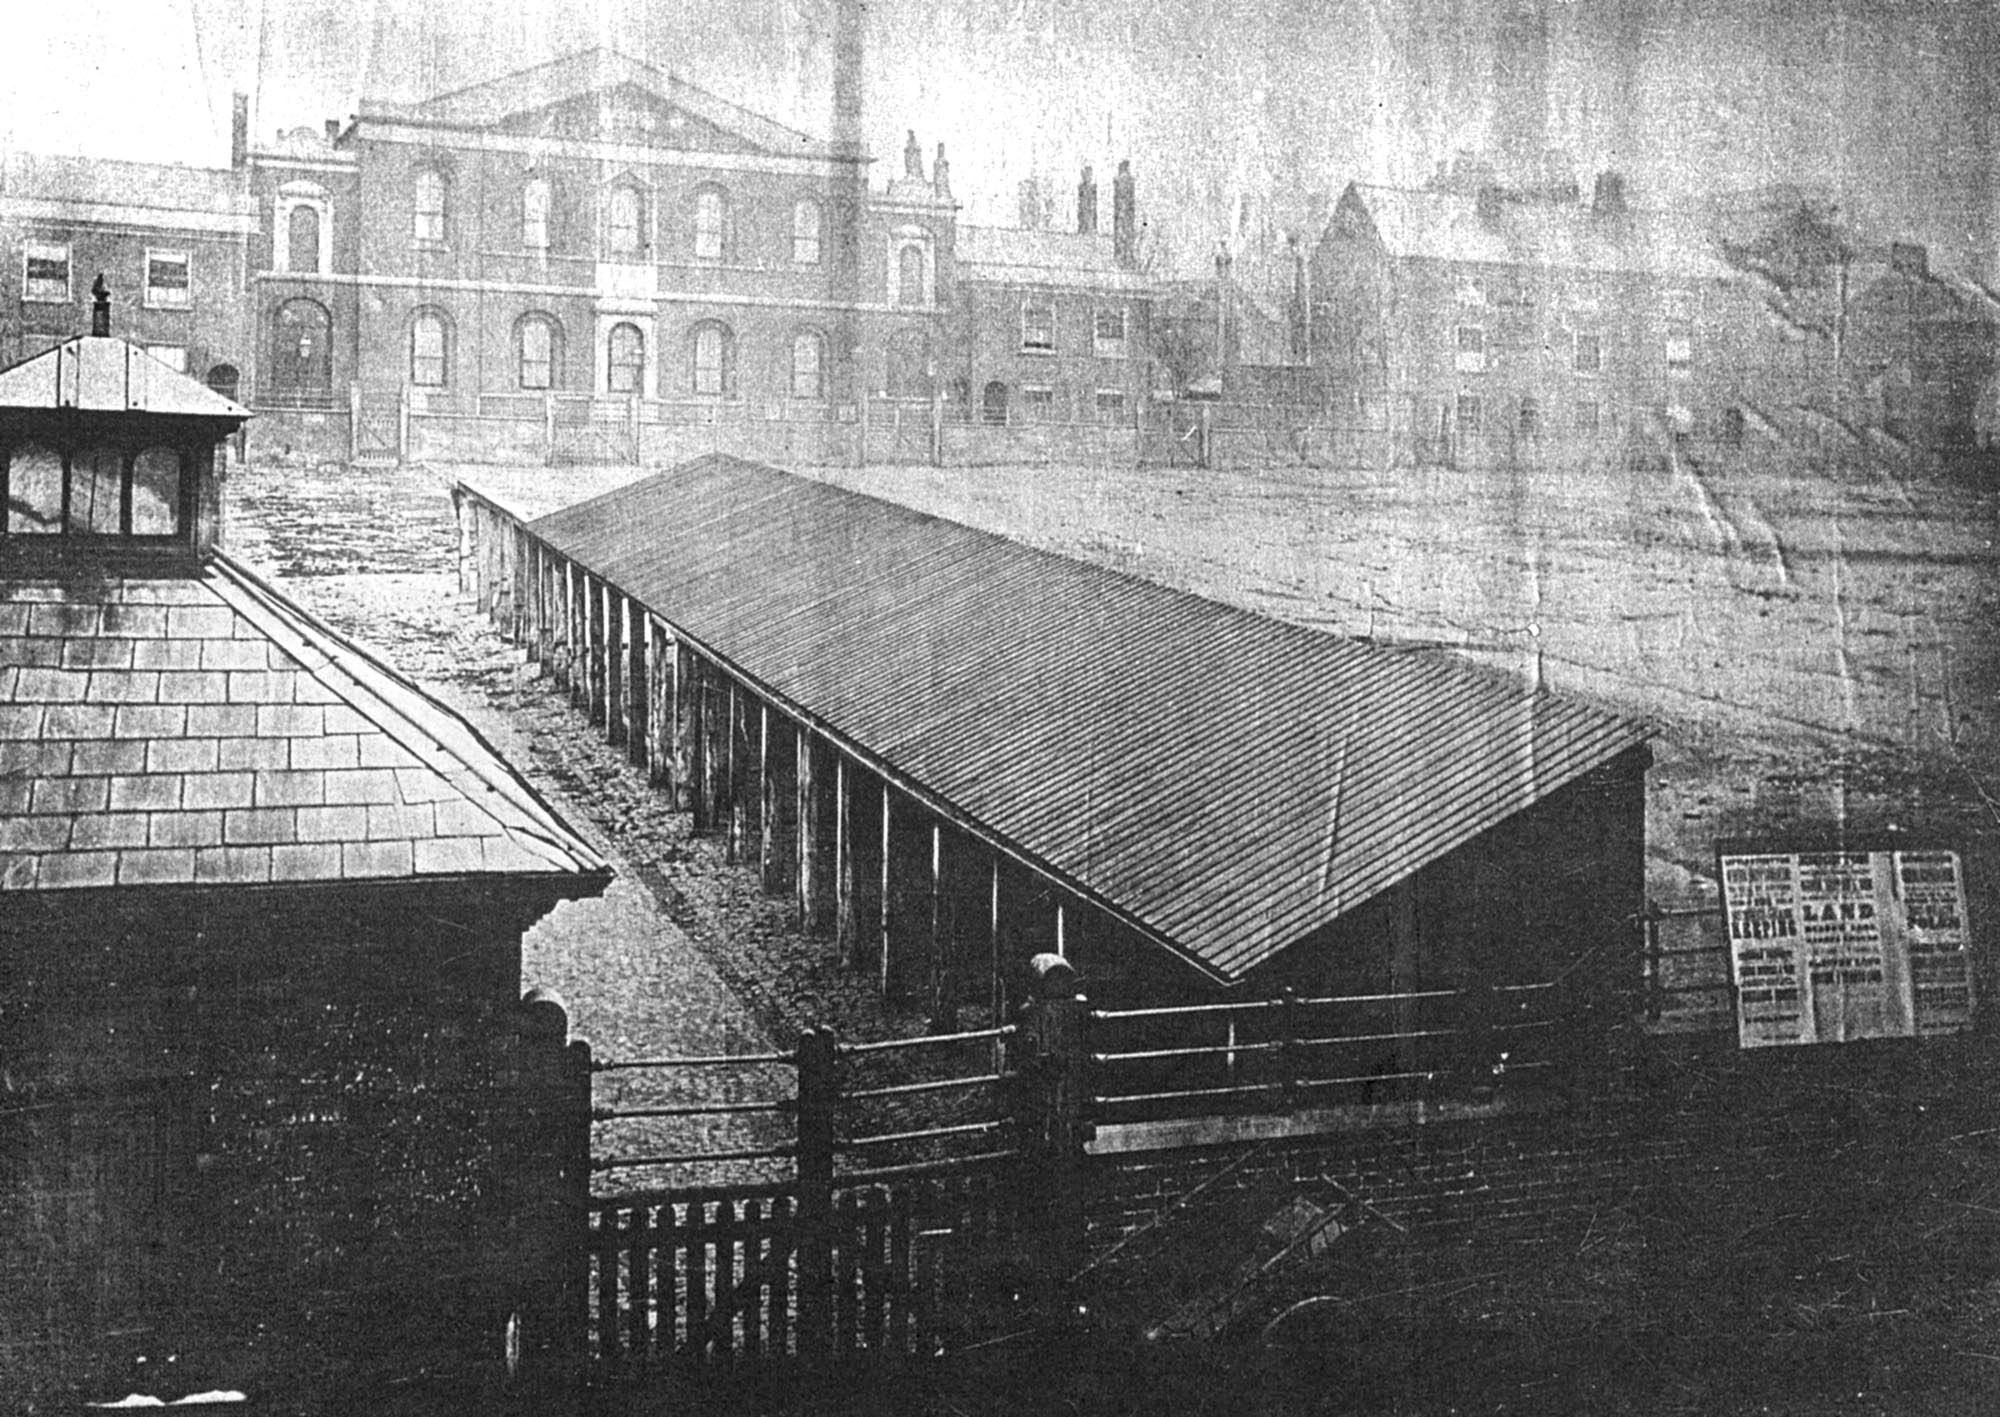 The animal sheds of the cattle market are in the foreground and you can see the chapel in background, circa 1870 -